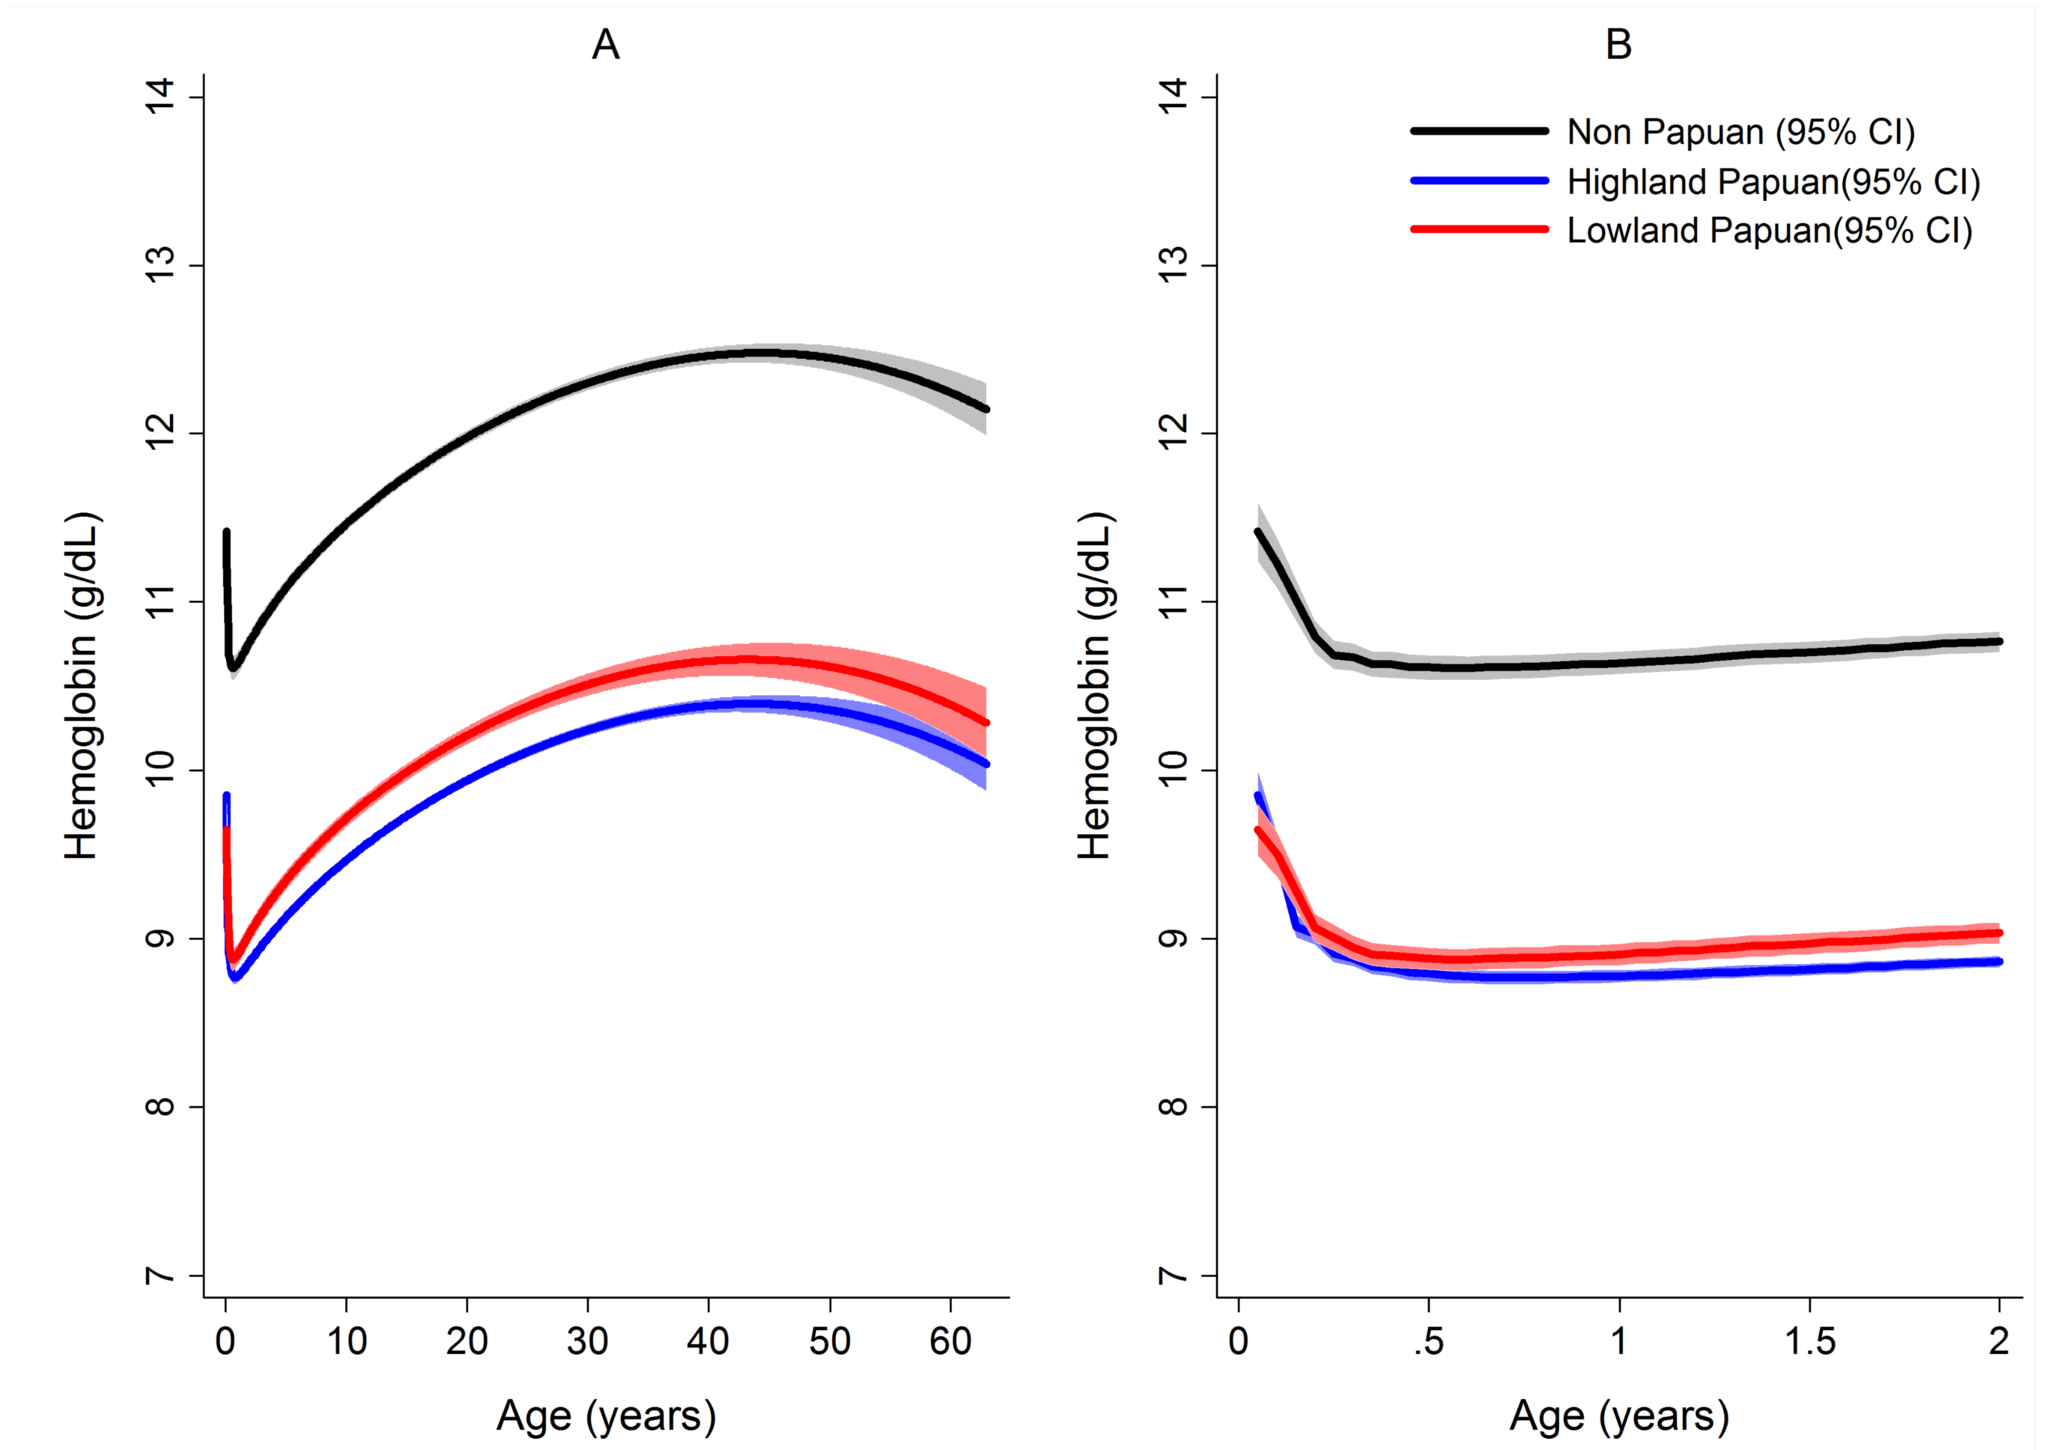 Estimated mean hemoglobin concentration in hospital attendees by ethnicity from infancy to adulthood (A) and during the first 2 years of life (B).